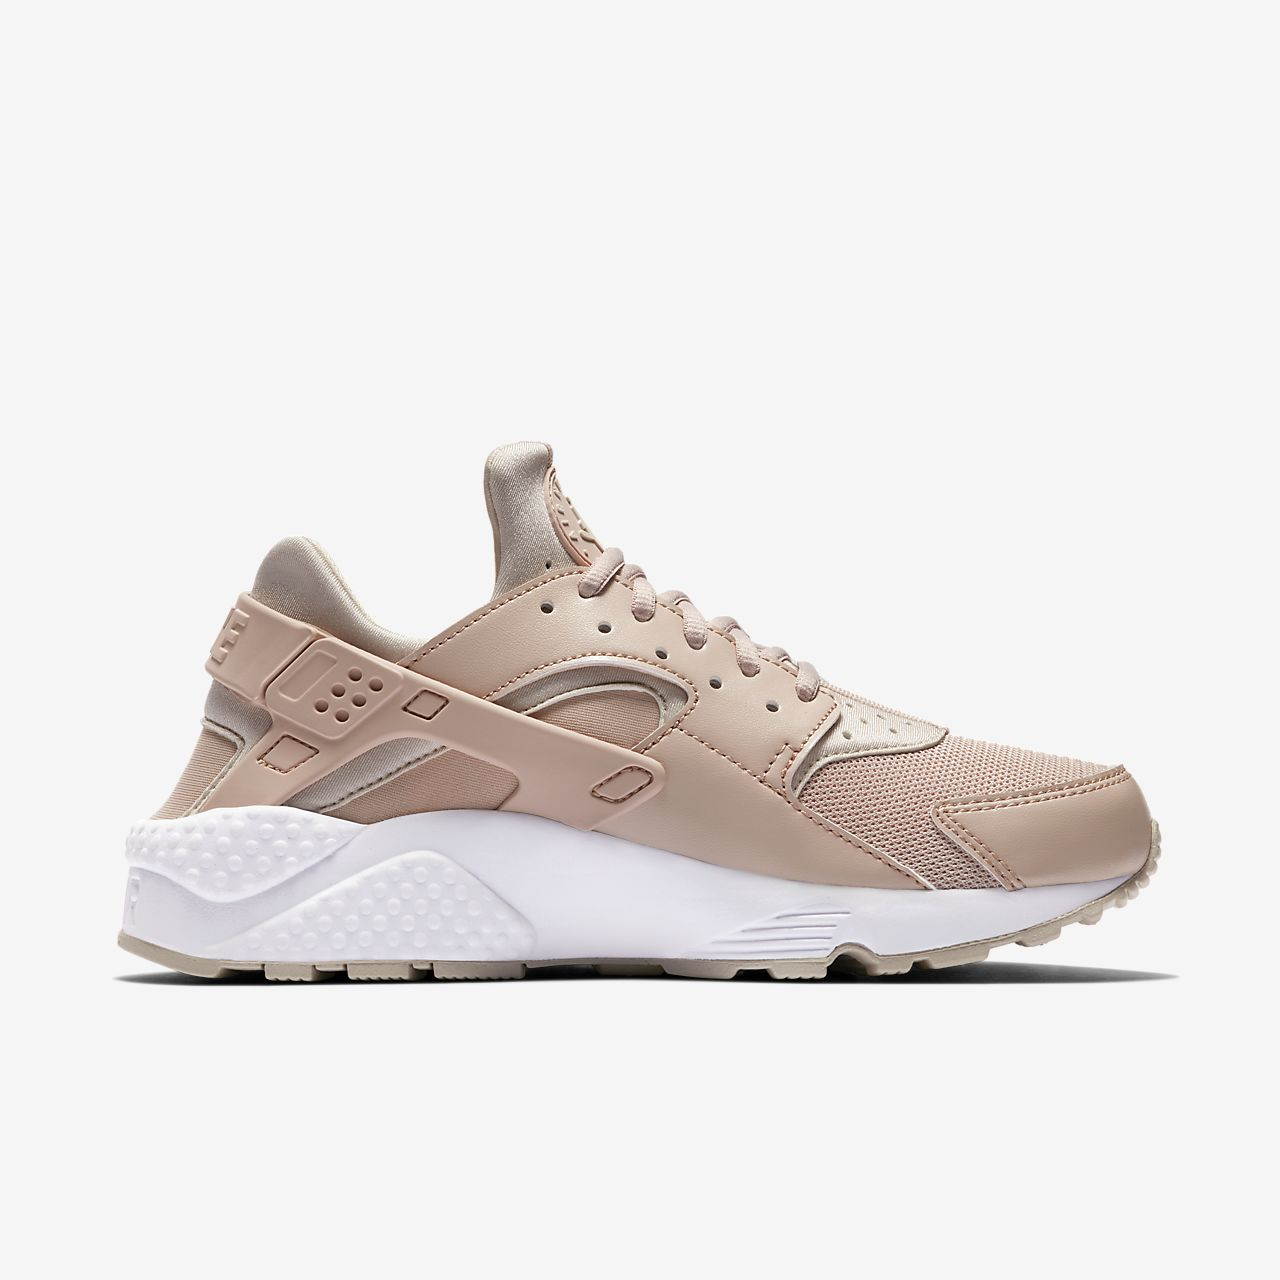 nike huarache review nederlands